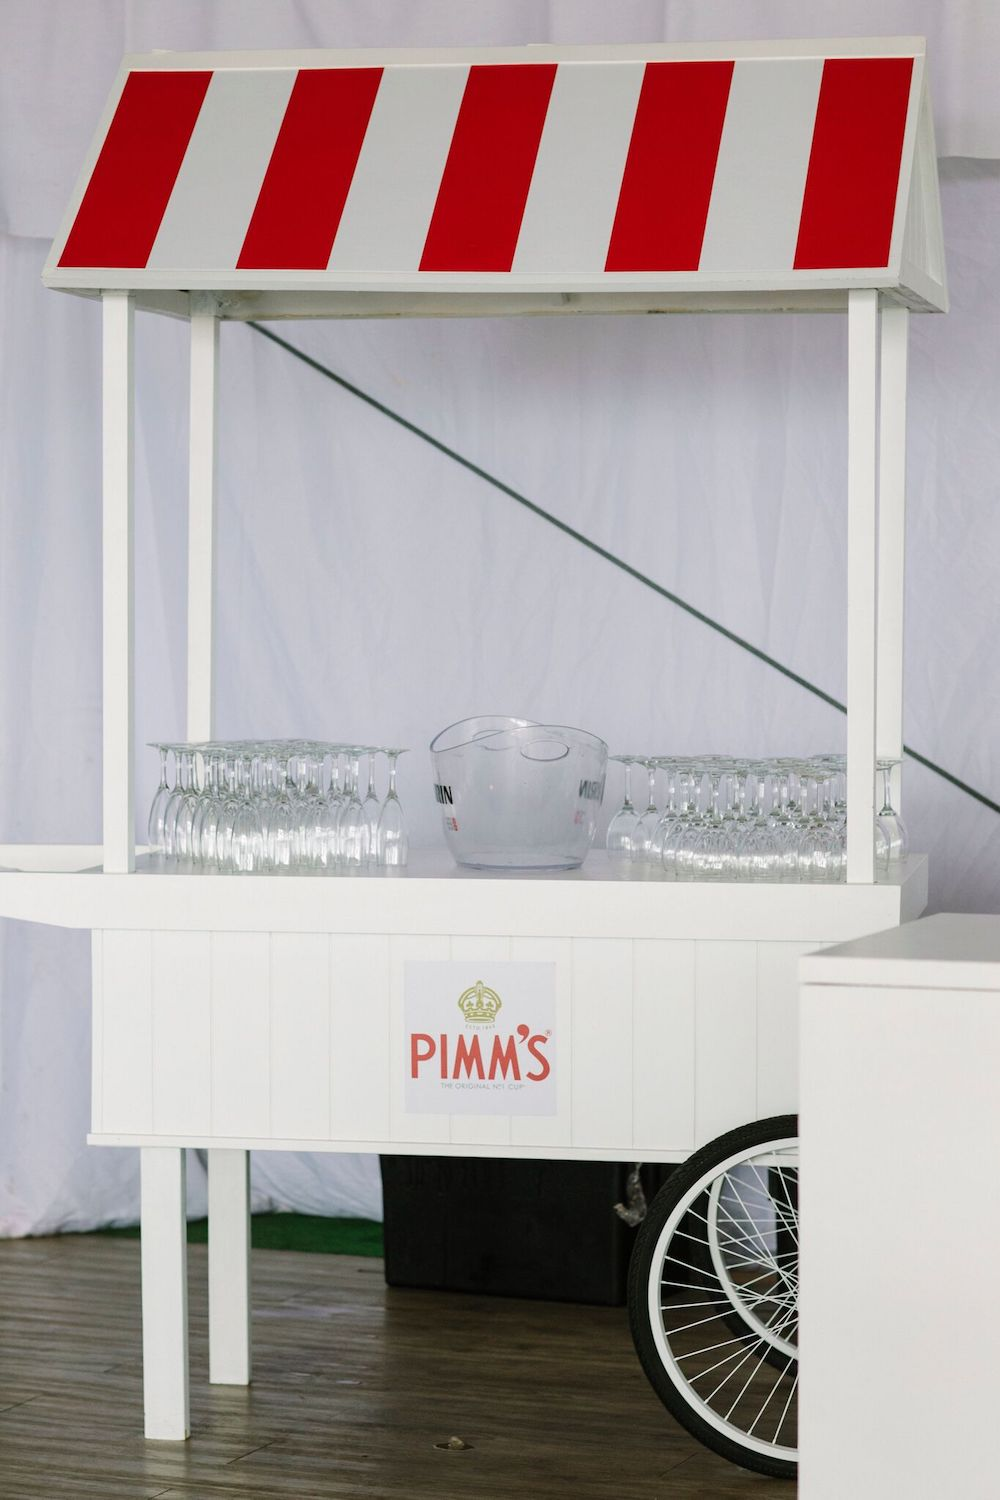 Brisbane Racing Club Event Hire Melbourne Cup Event Styling2.jpeg